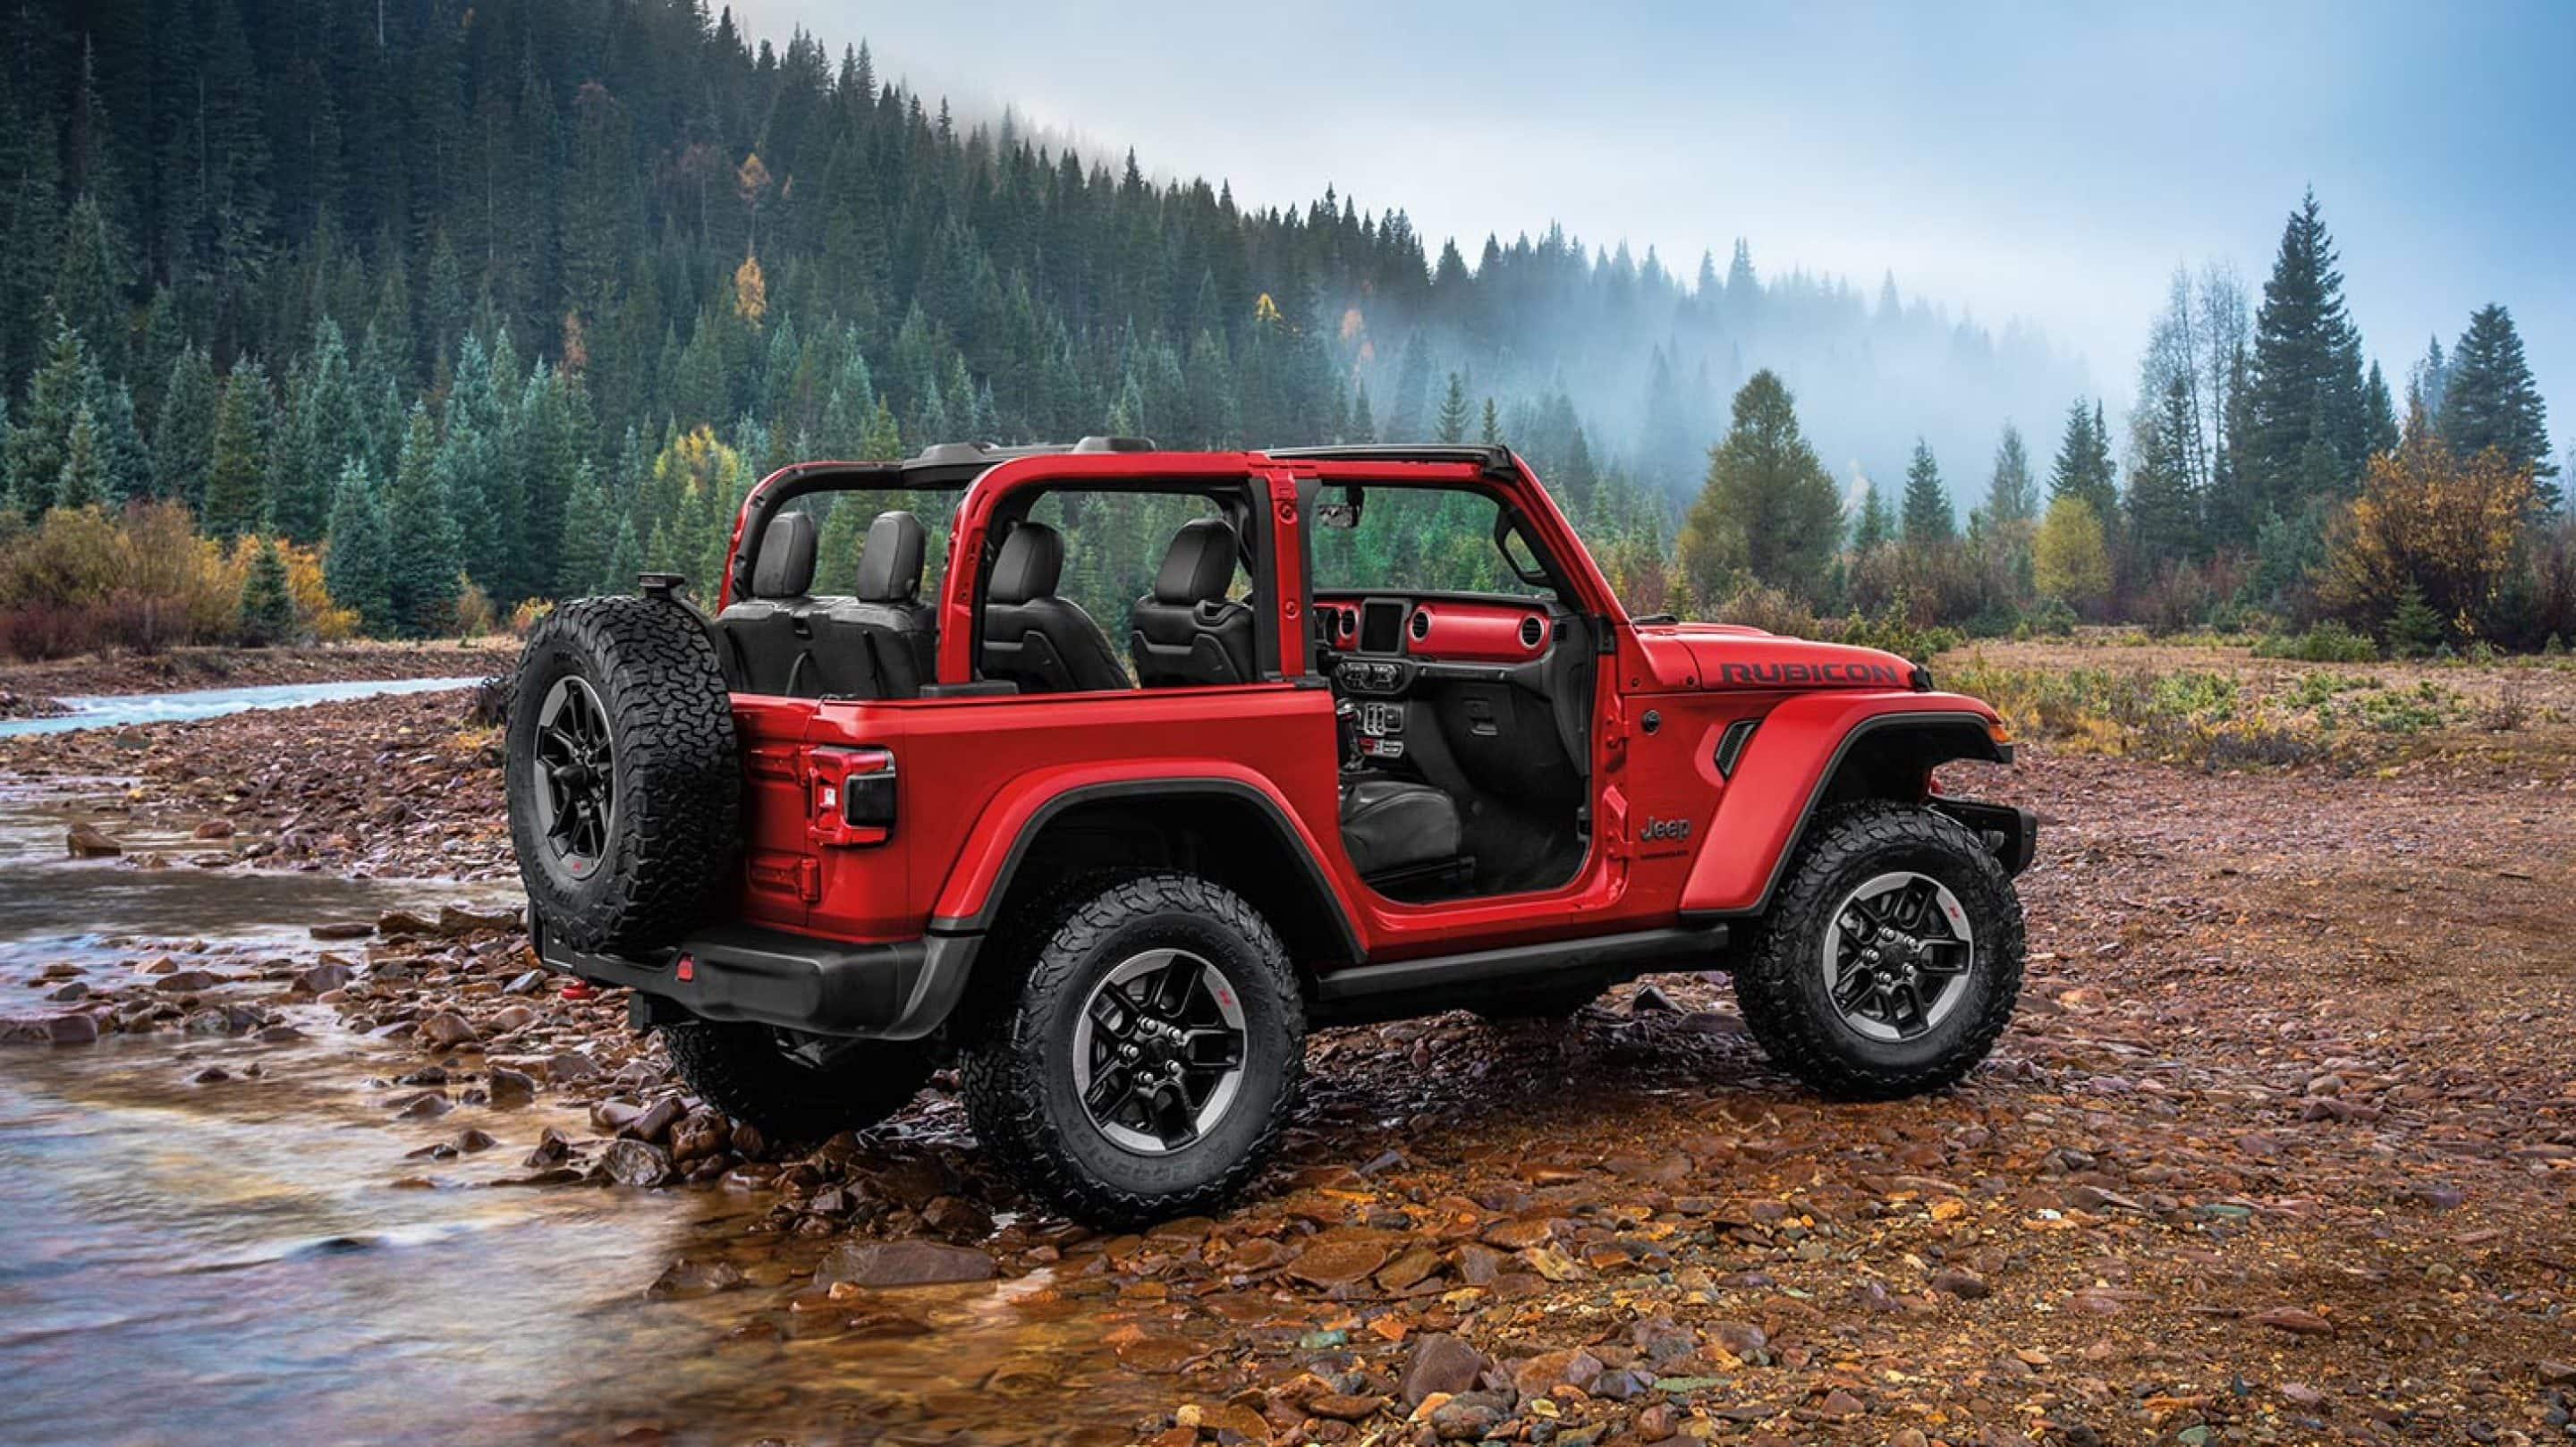 Jeep Ram Service Center Delaware County PA